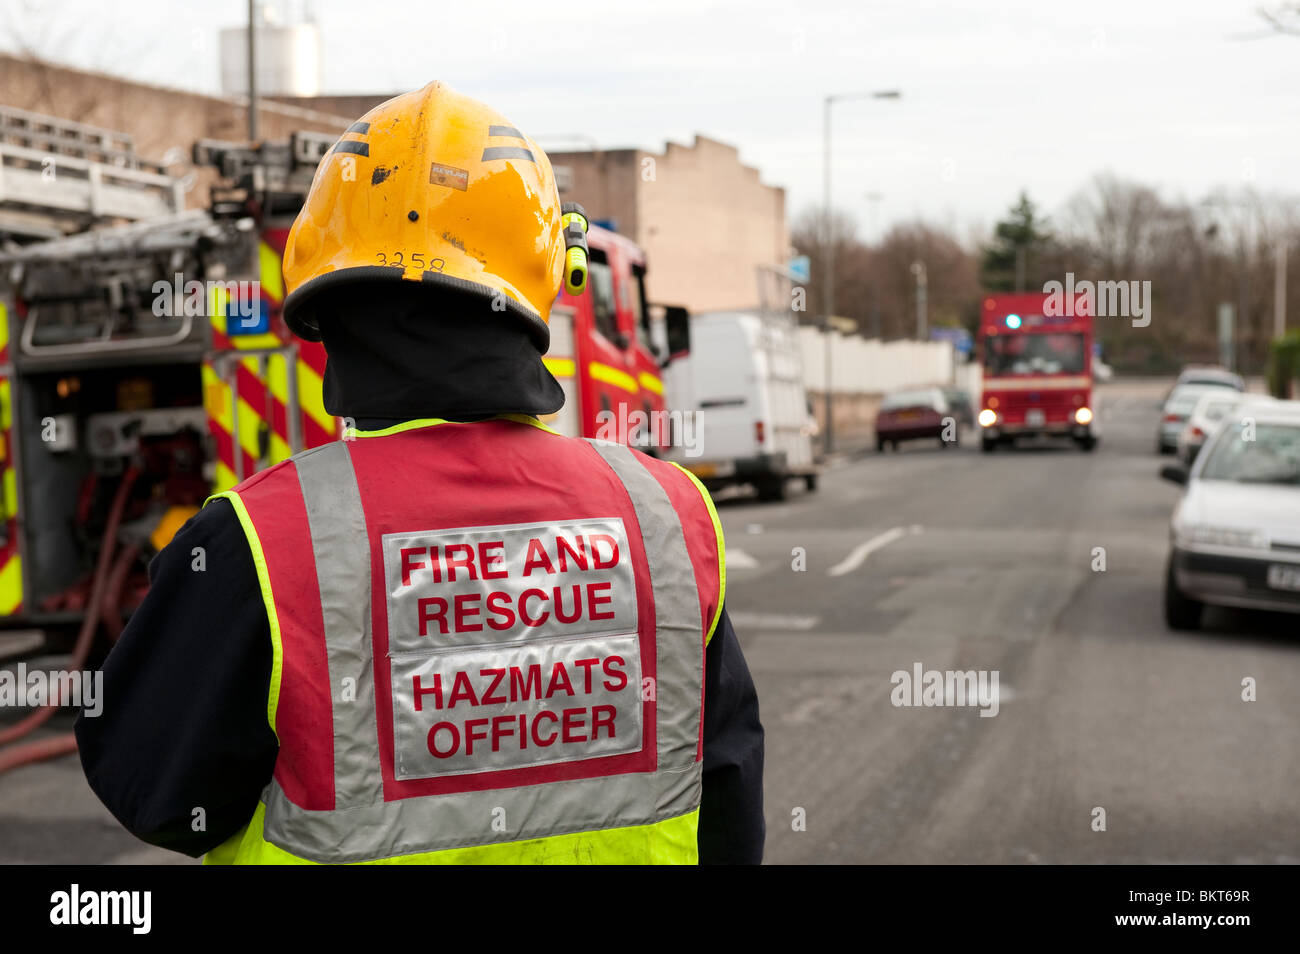 Fire and Rescue Hazmat Officer FULLY MODEL RELEASED - Stock Image